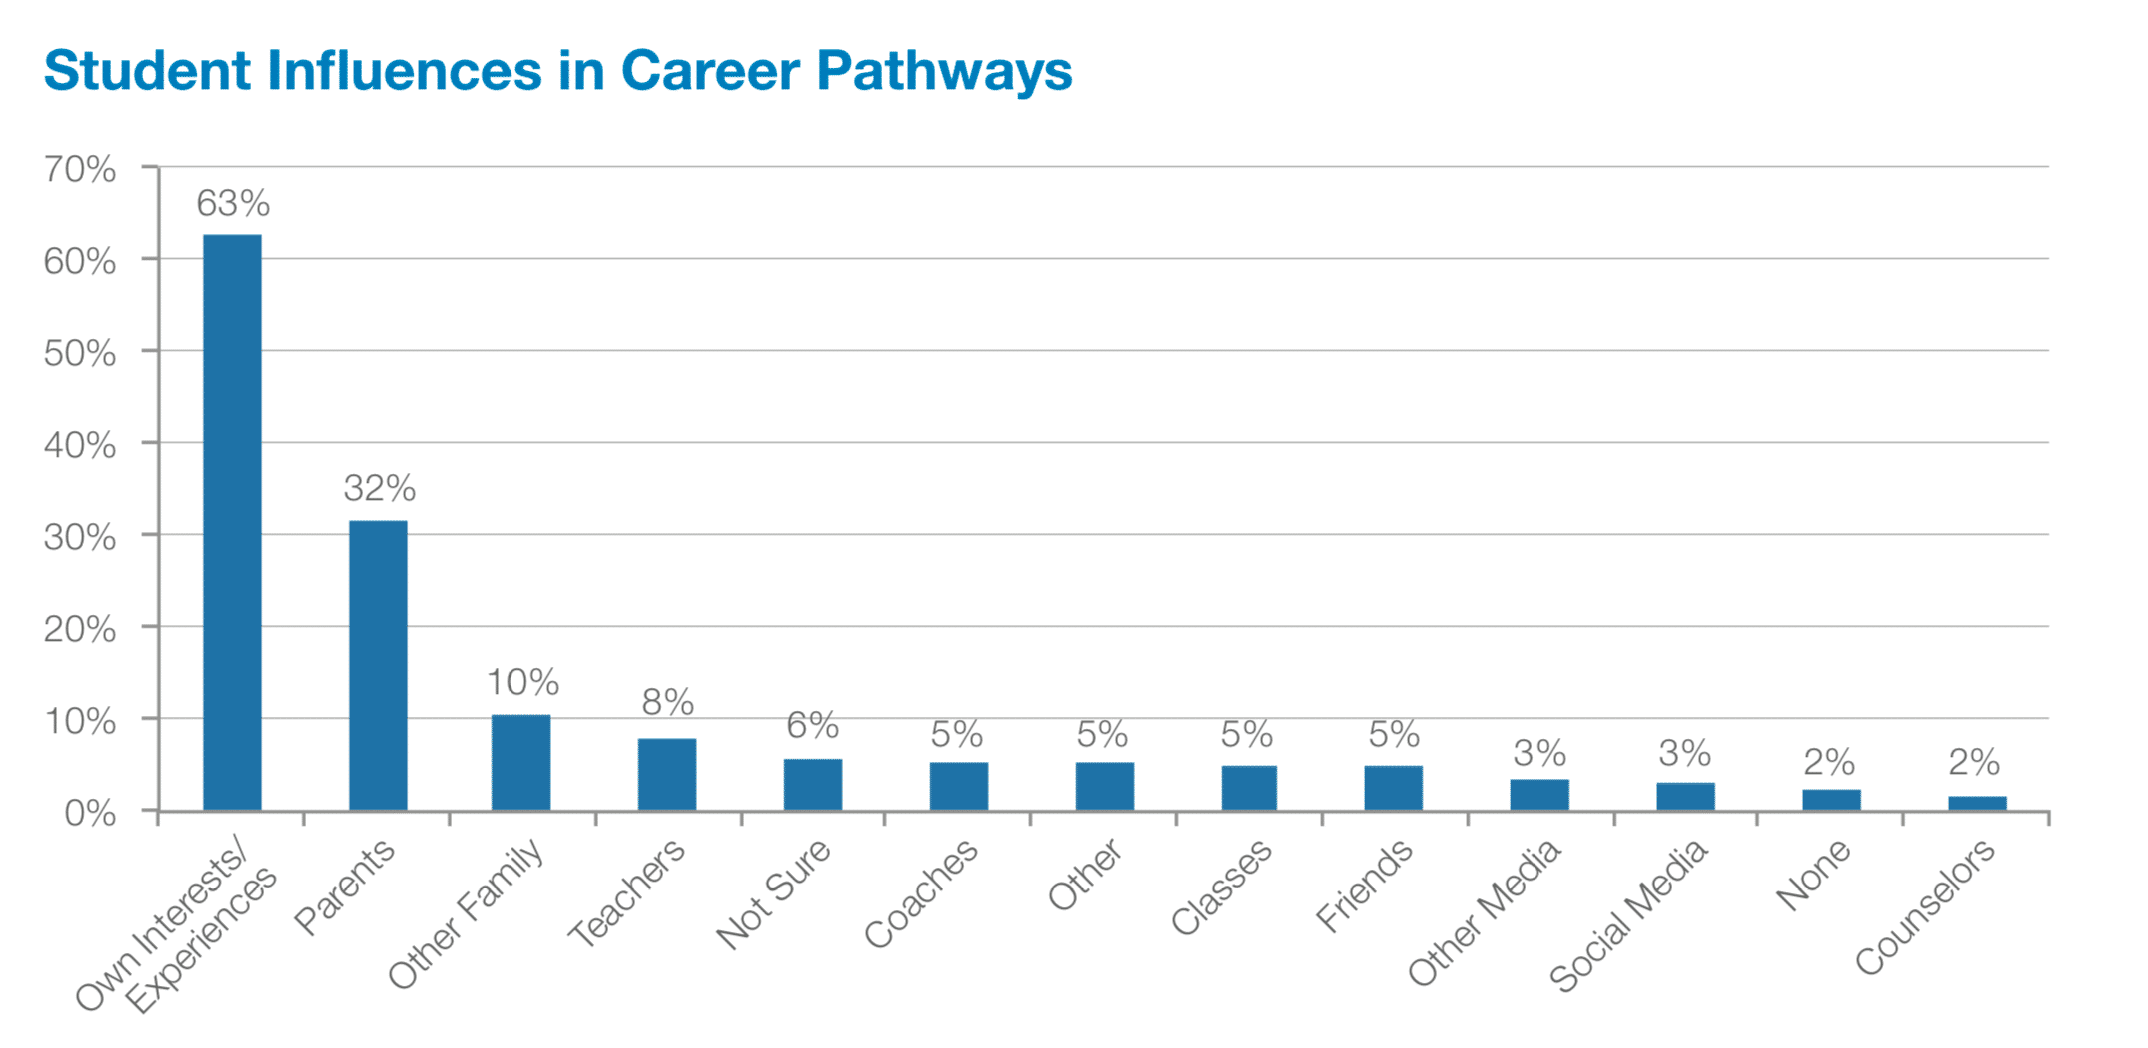 Student Influences in Career Pathways